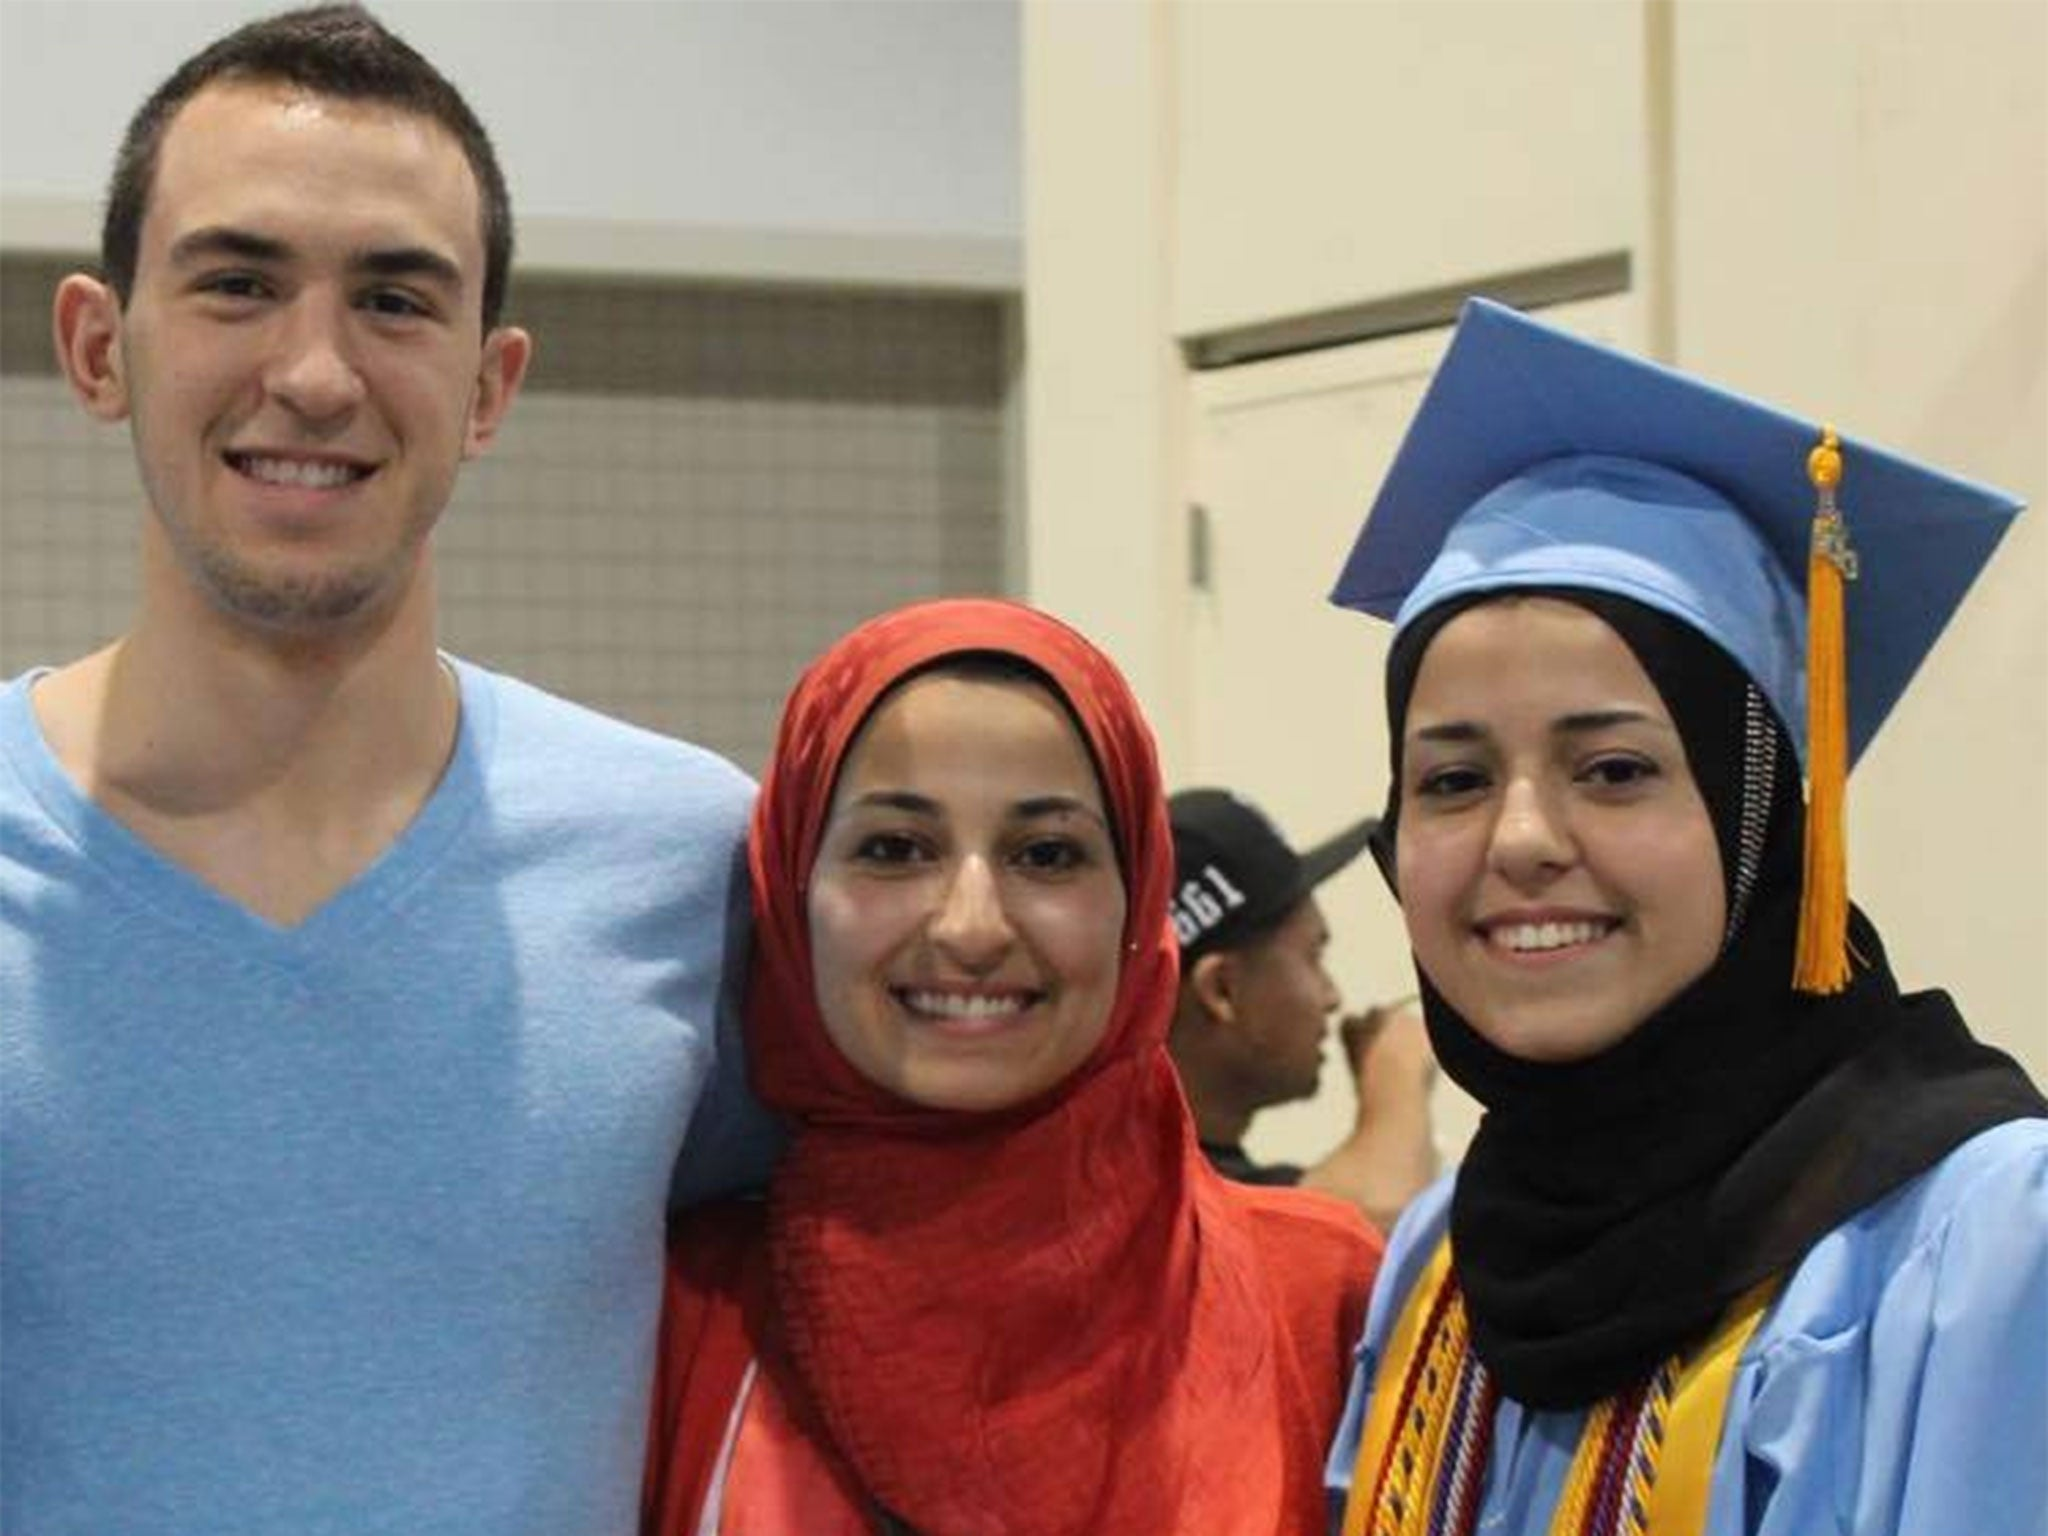 Muslim students murdered in North Carolina, USA, Deah Shaddy Barakat, Yusor Mohammad and Razan Mohammad Abu-Salha